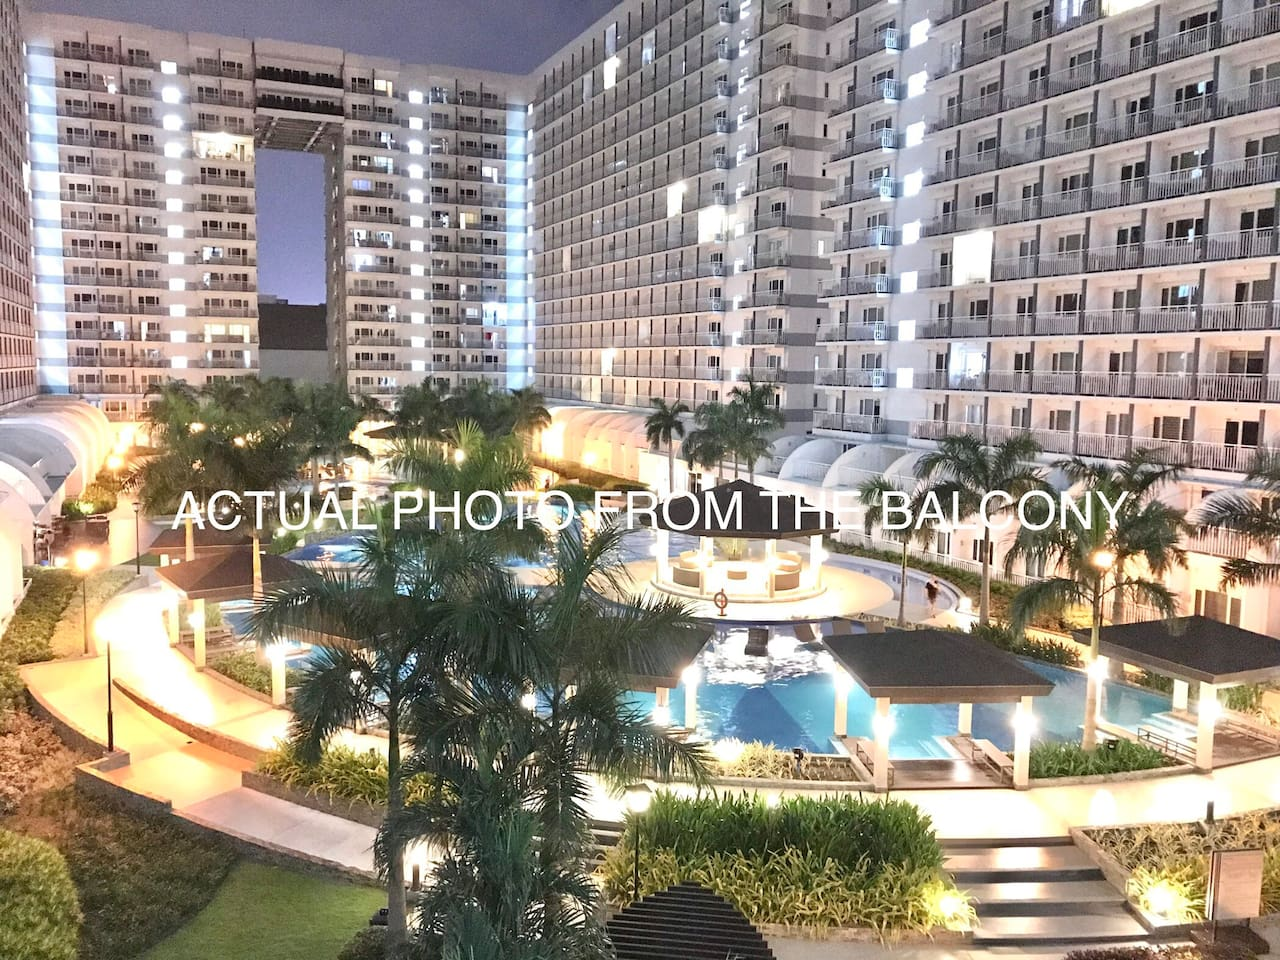 ACTUAL PHOTO FROM THE BALCONY. Welcome to SHELL Residences! Winner--Best Landscape Architectural Design